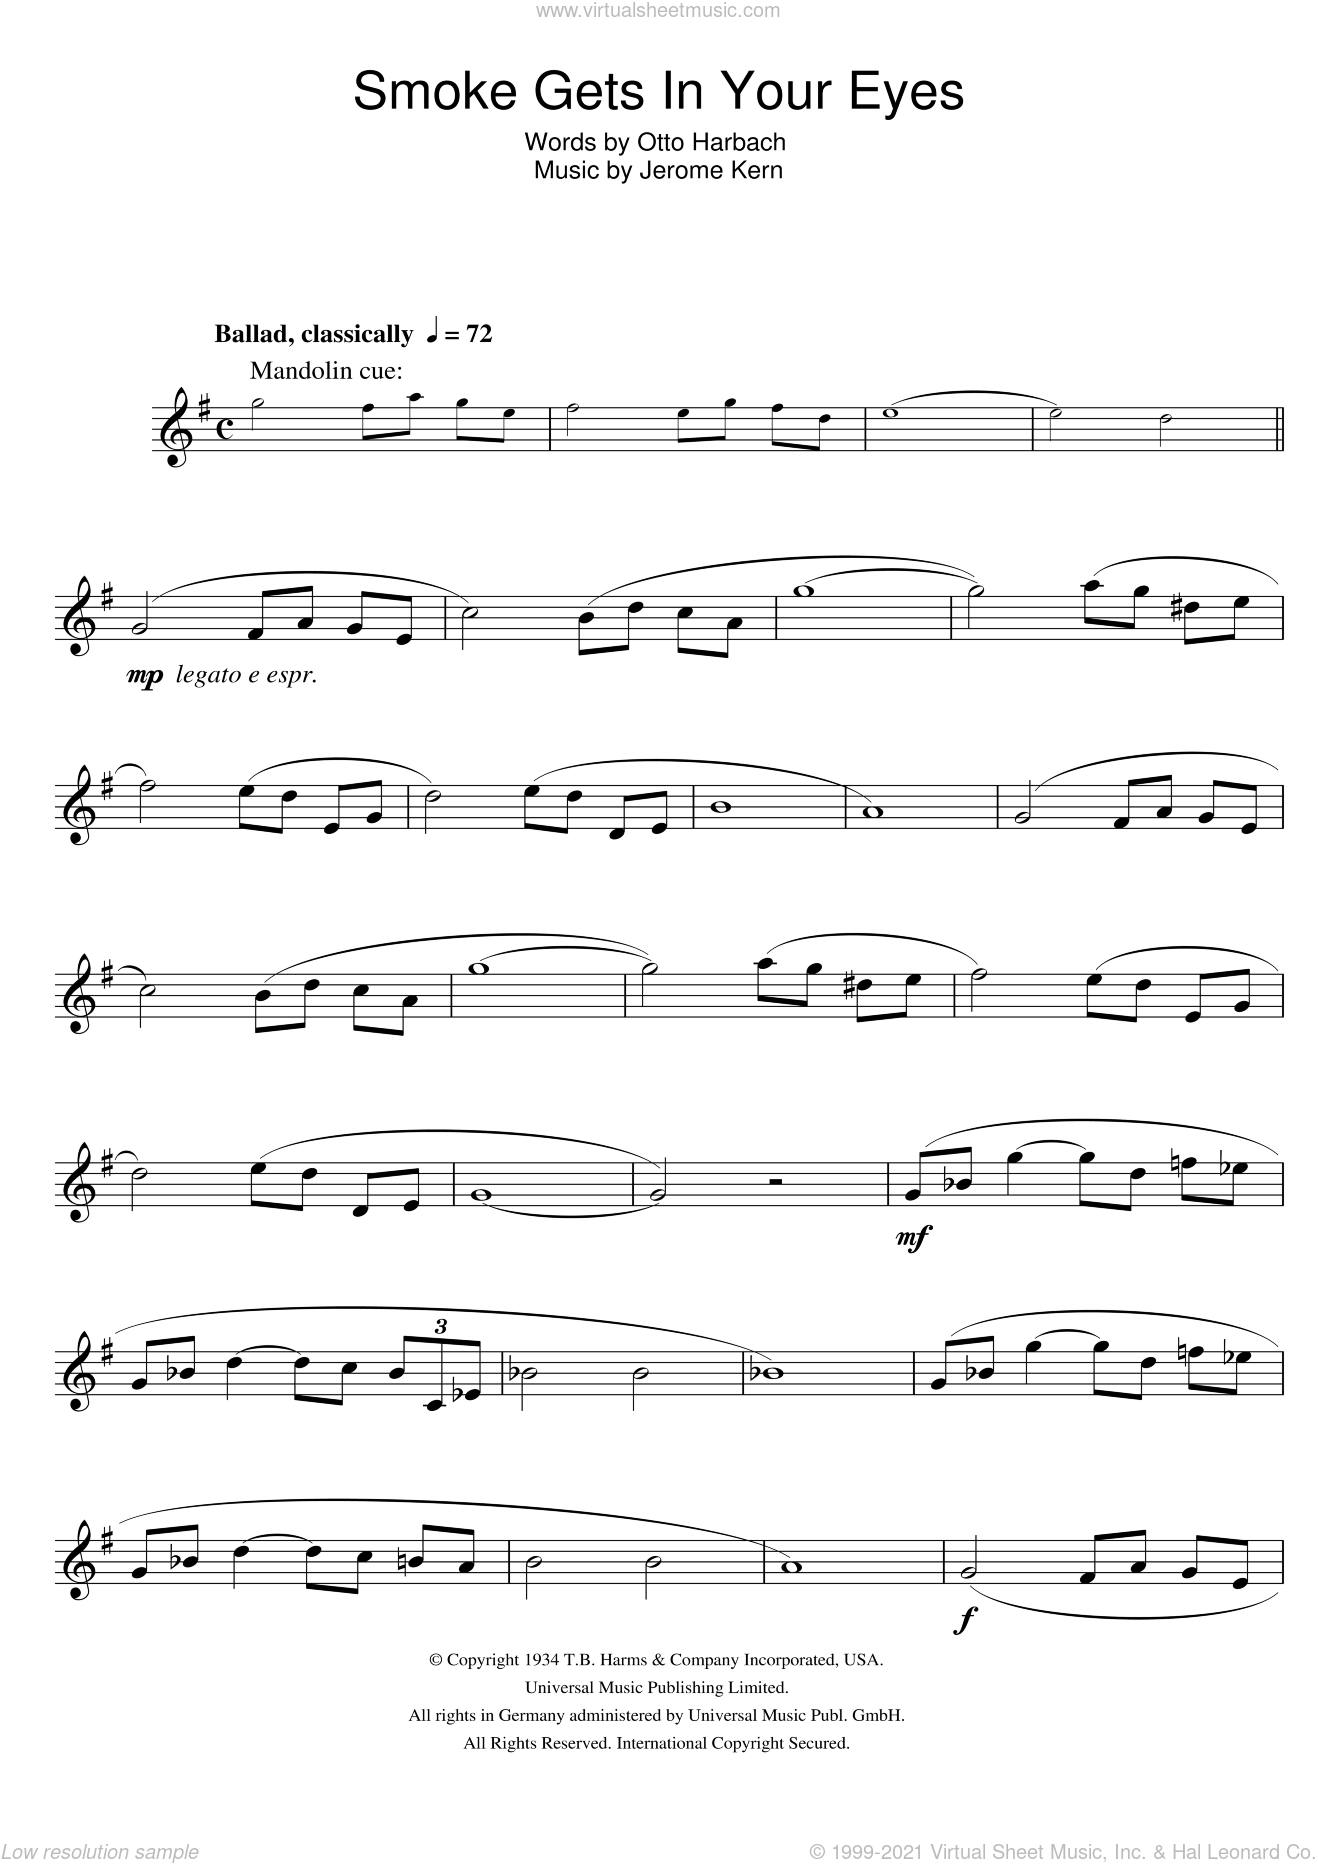 Smoke Gets In Your Eyes sheet music for clarinet solo by Jerome Kern and Otto Harbach, intermediate skill level